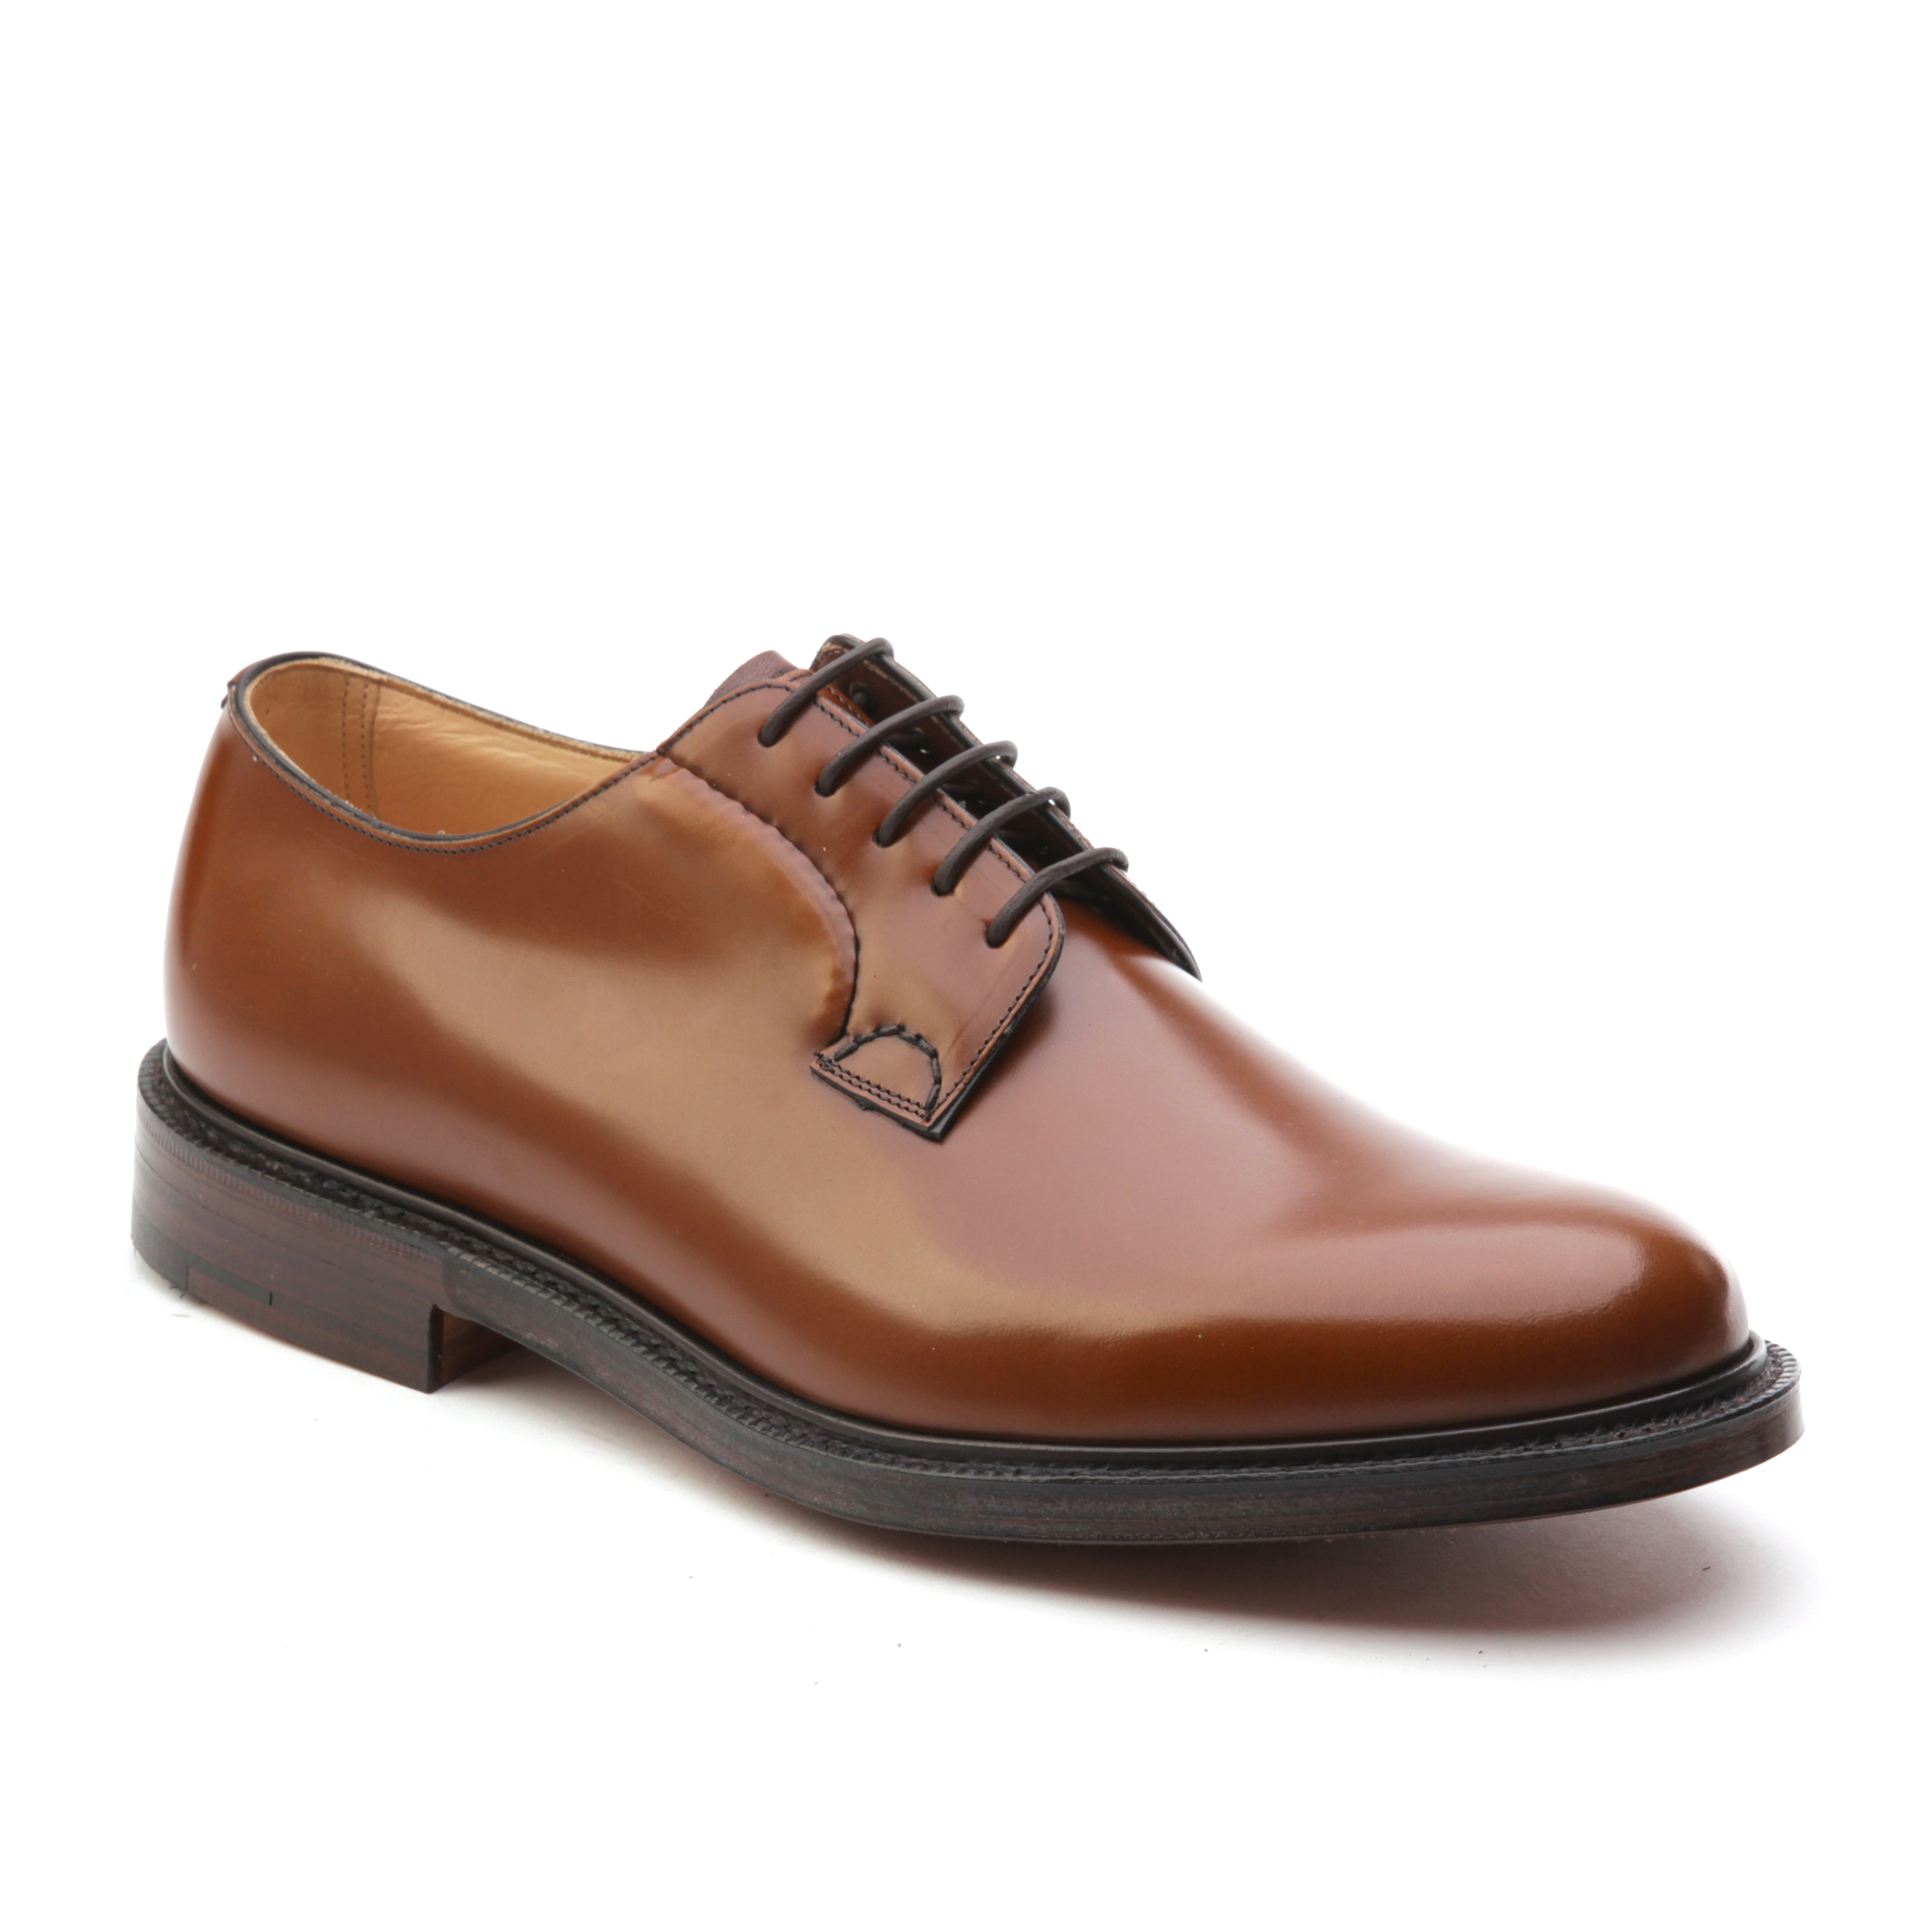 Cuir Derby Shannon Churchs Printemps / Été